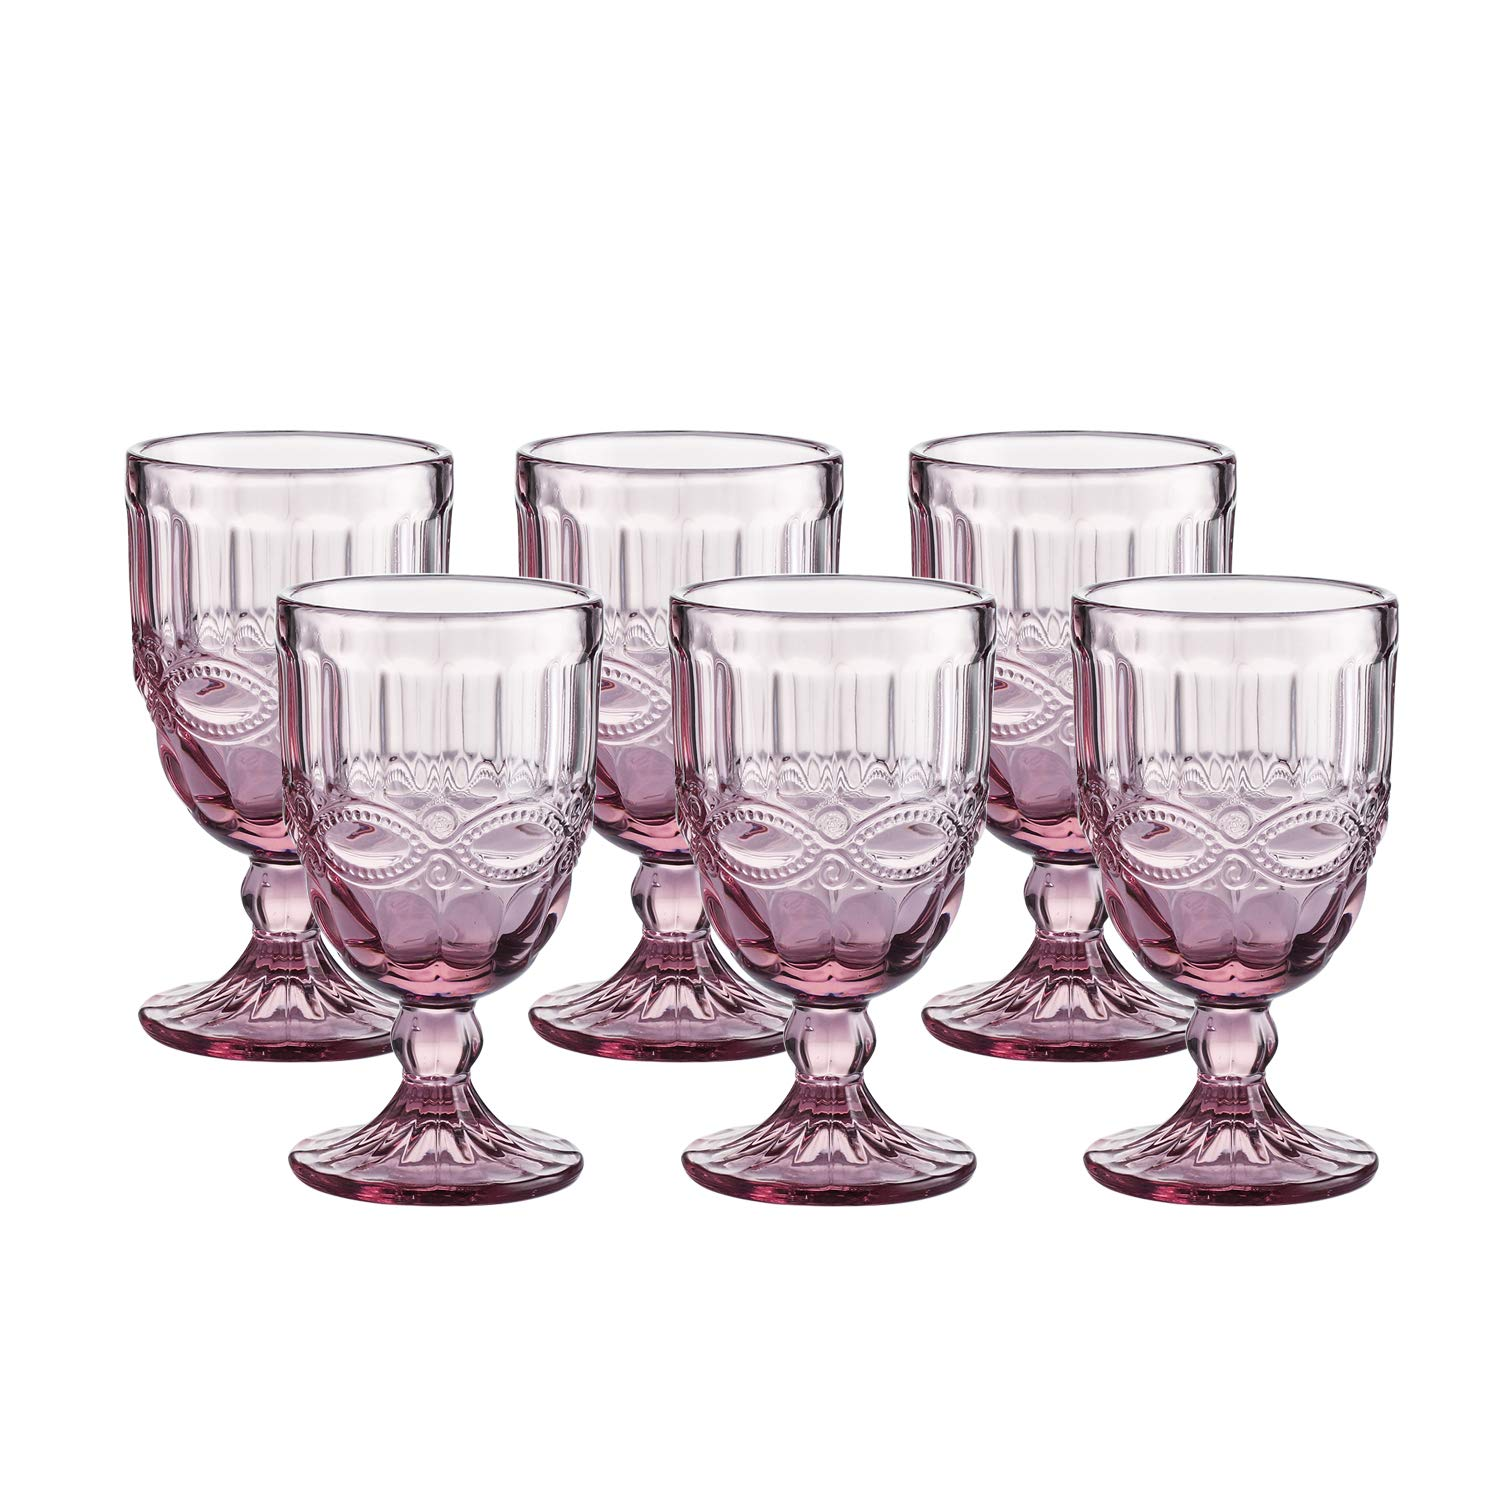 Colored Glass Goblet Vintage - Pressed Pattern Wine Glass Wedding Goblet - 8.5 Ounce (Pink) by WH Housewares (Image #1)